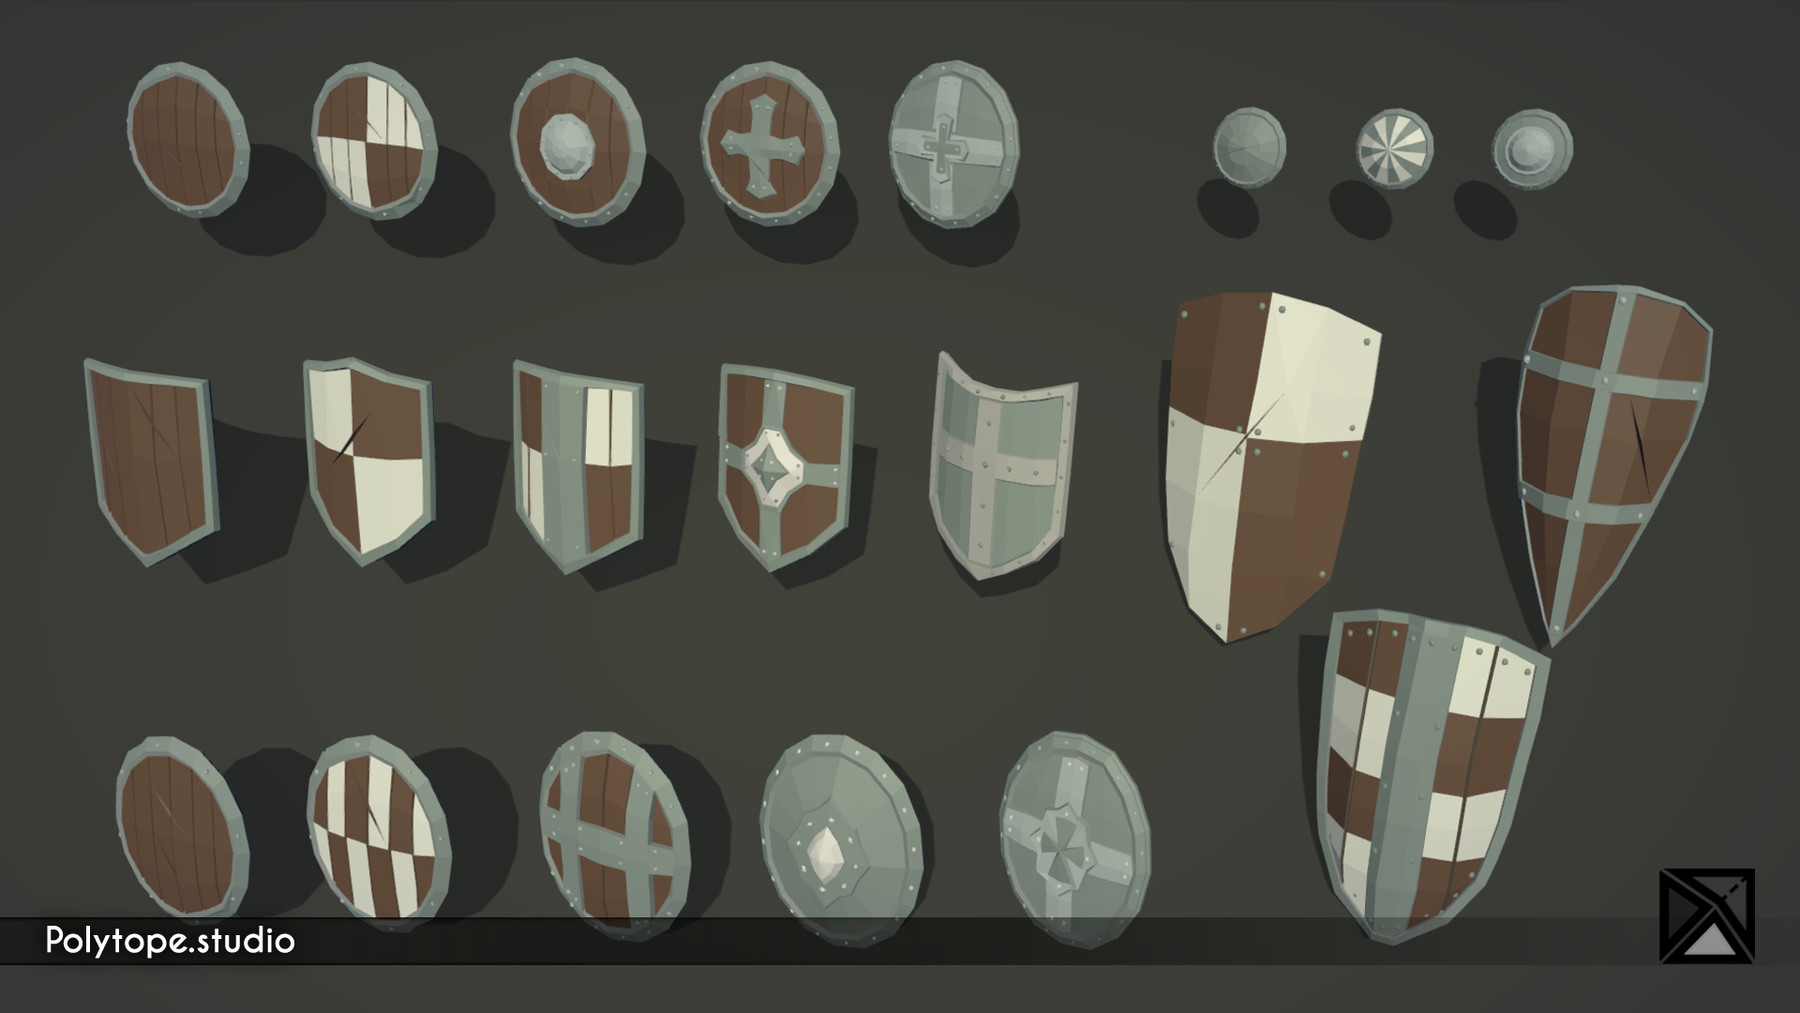 Pt medieval lowpoly weapons shield